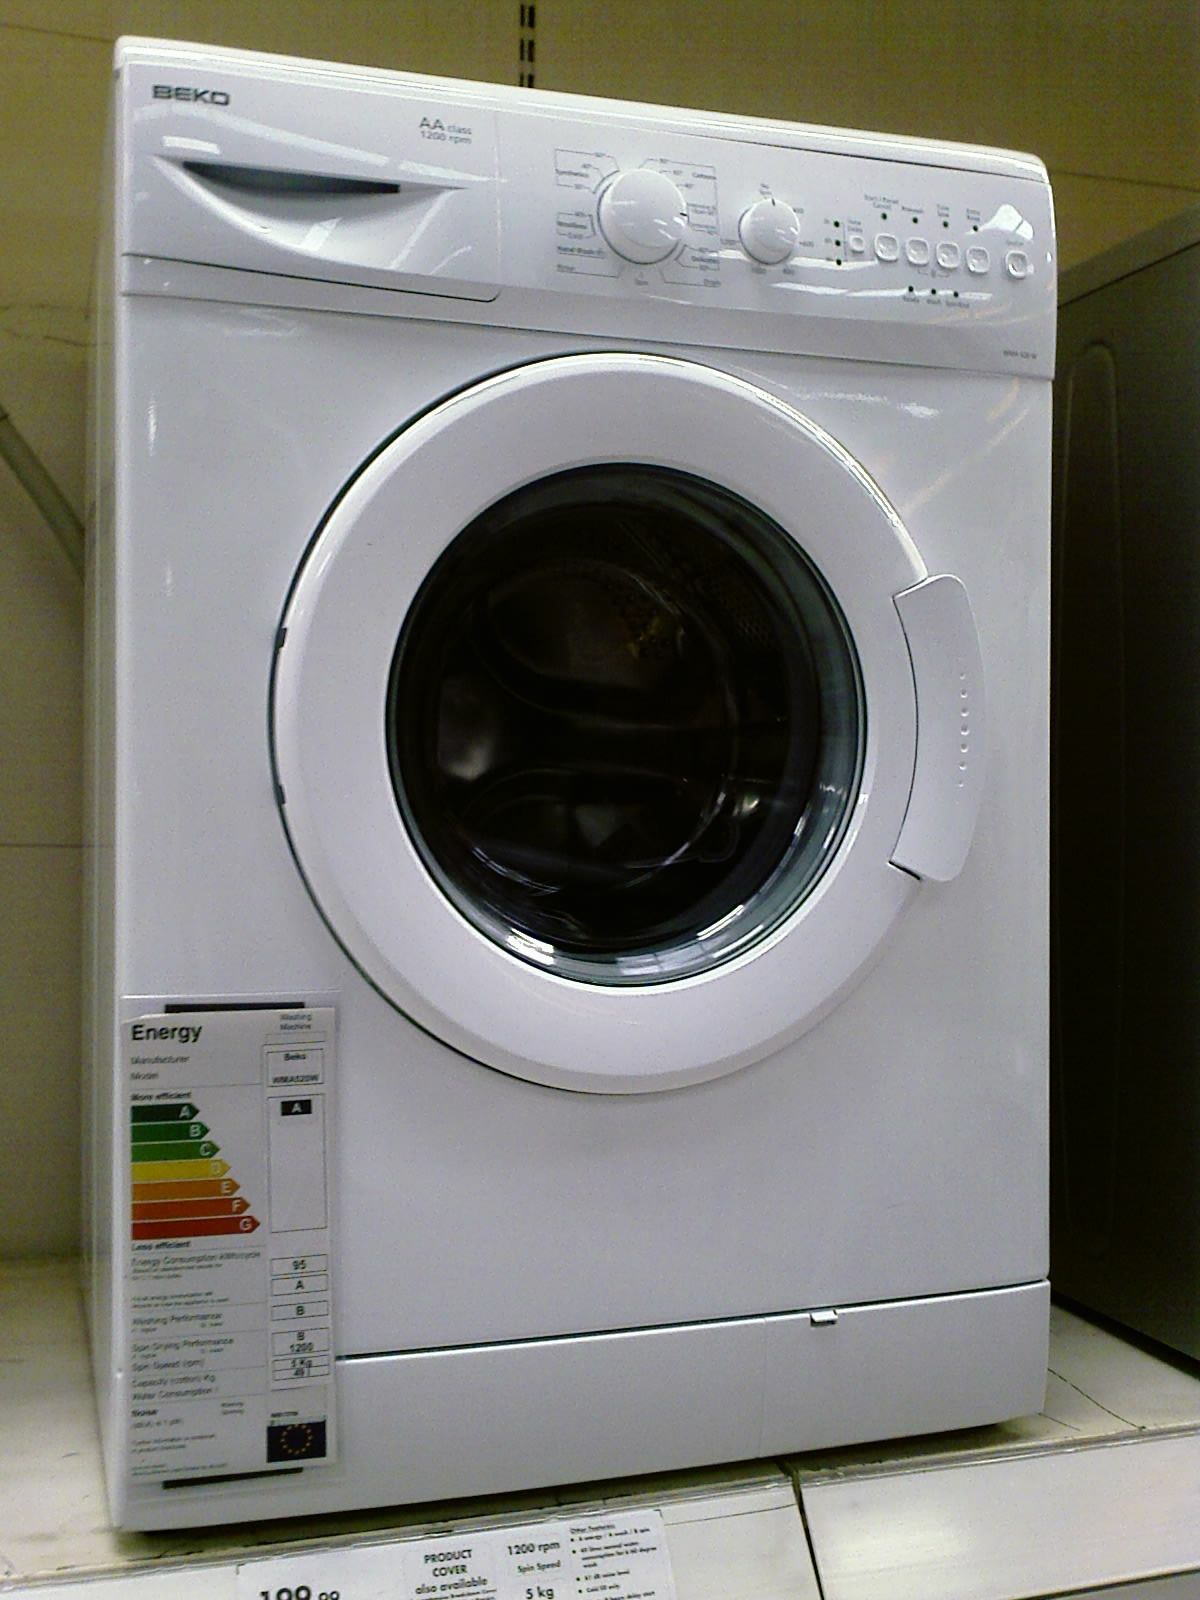 Файл Washing Machine Beko Jpg Википедия